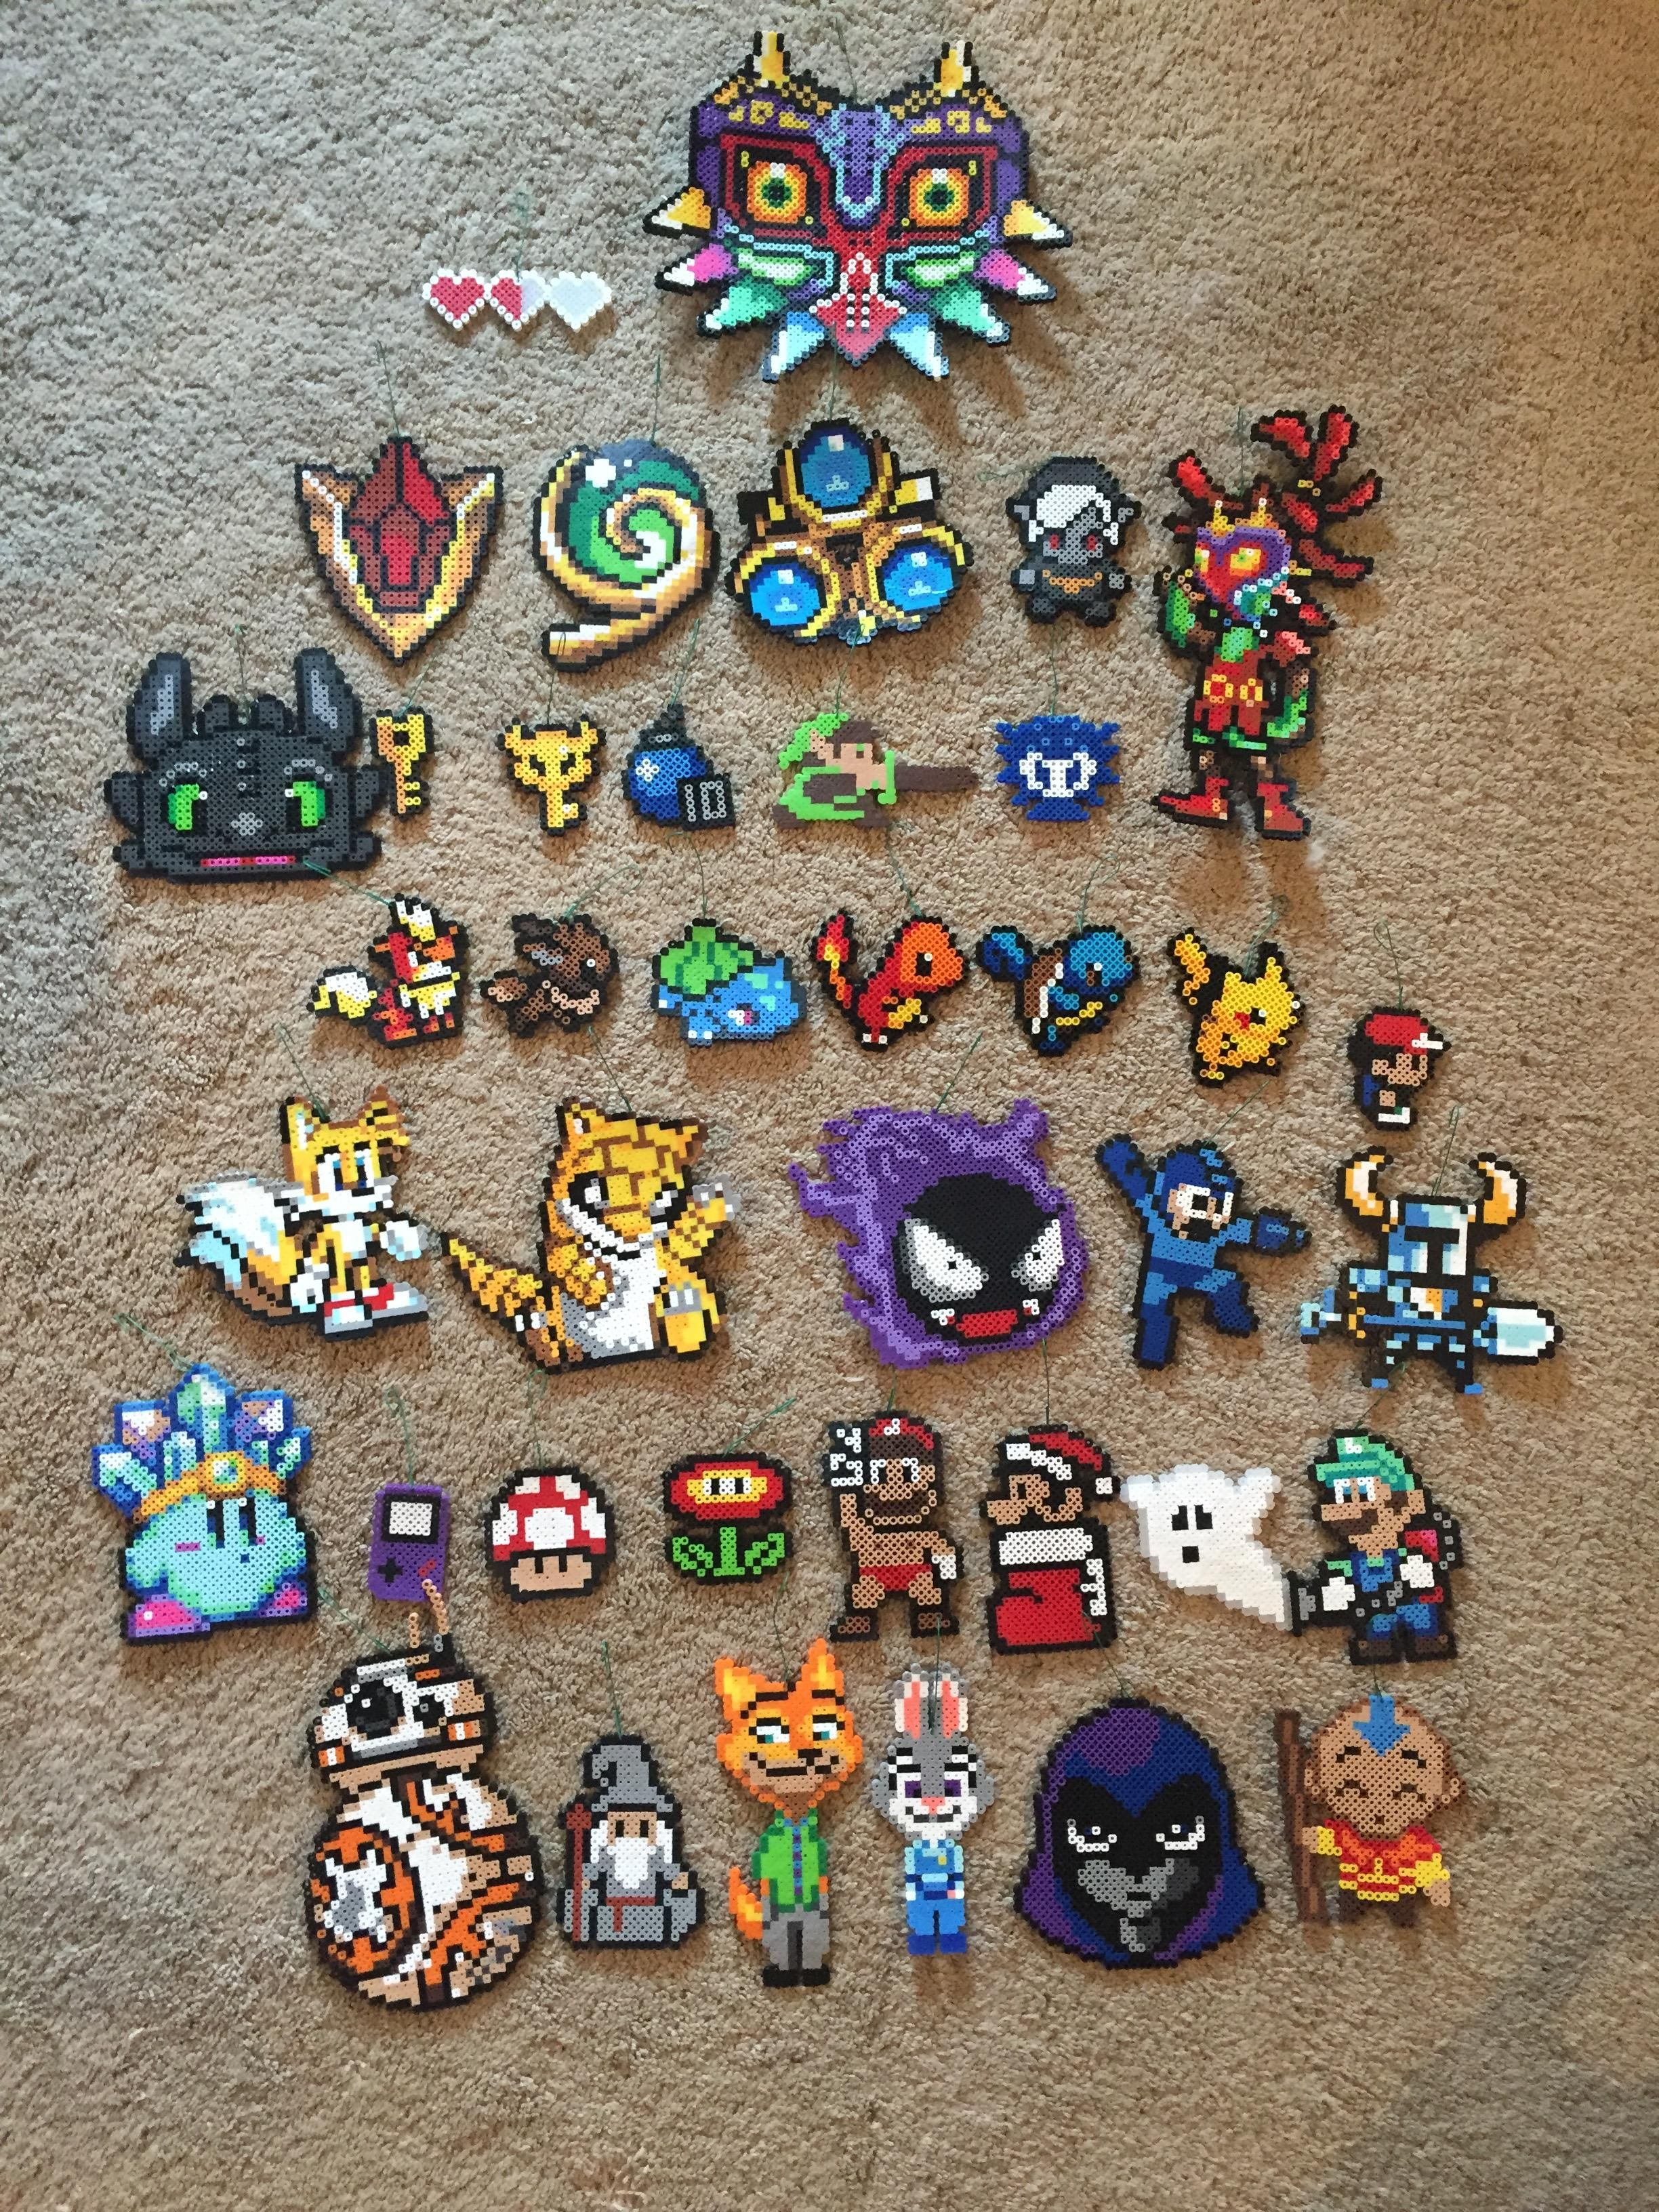 We Made All Our Christmas Ornaments This Year Fun Video Game Characters With A Few Tv And Movies Characters As W Perler Bead Art Perler Beads Designs Bead Art